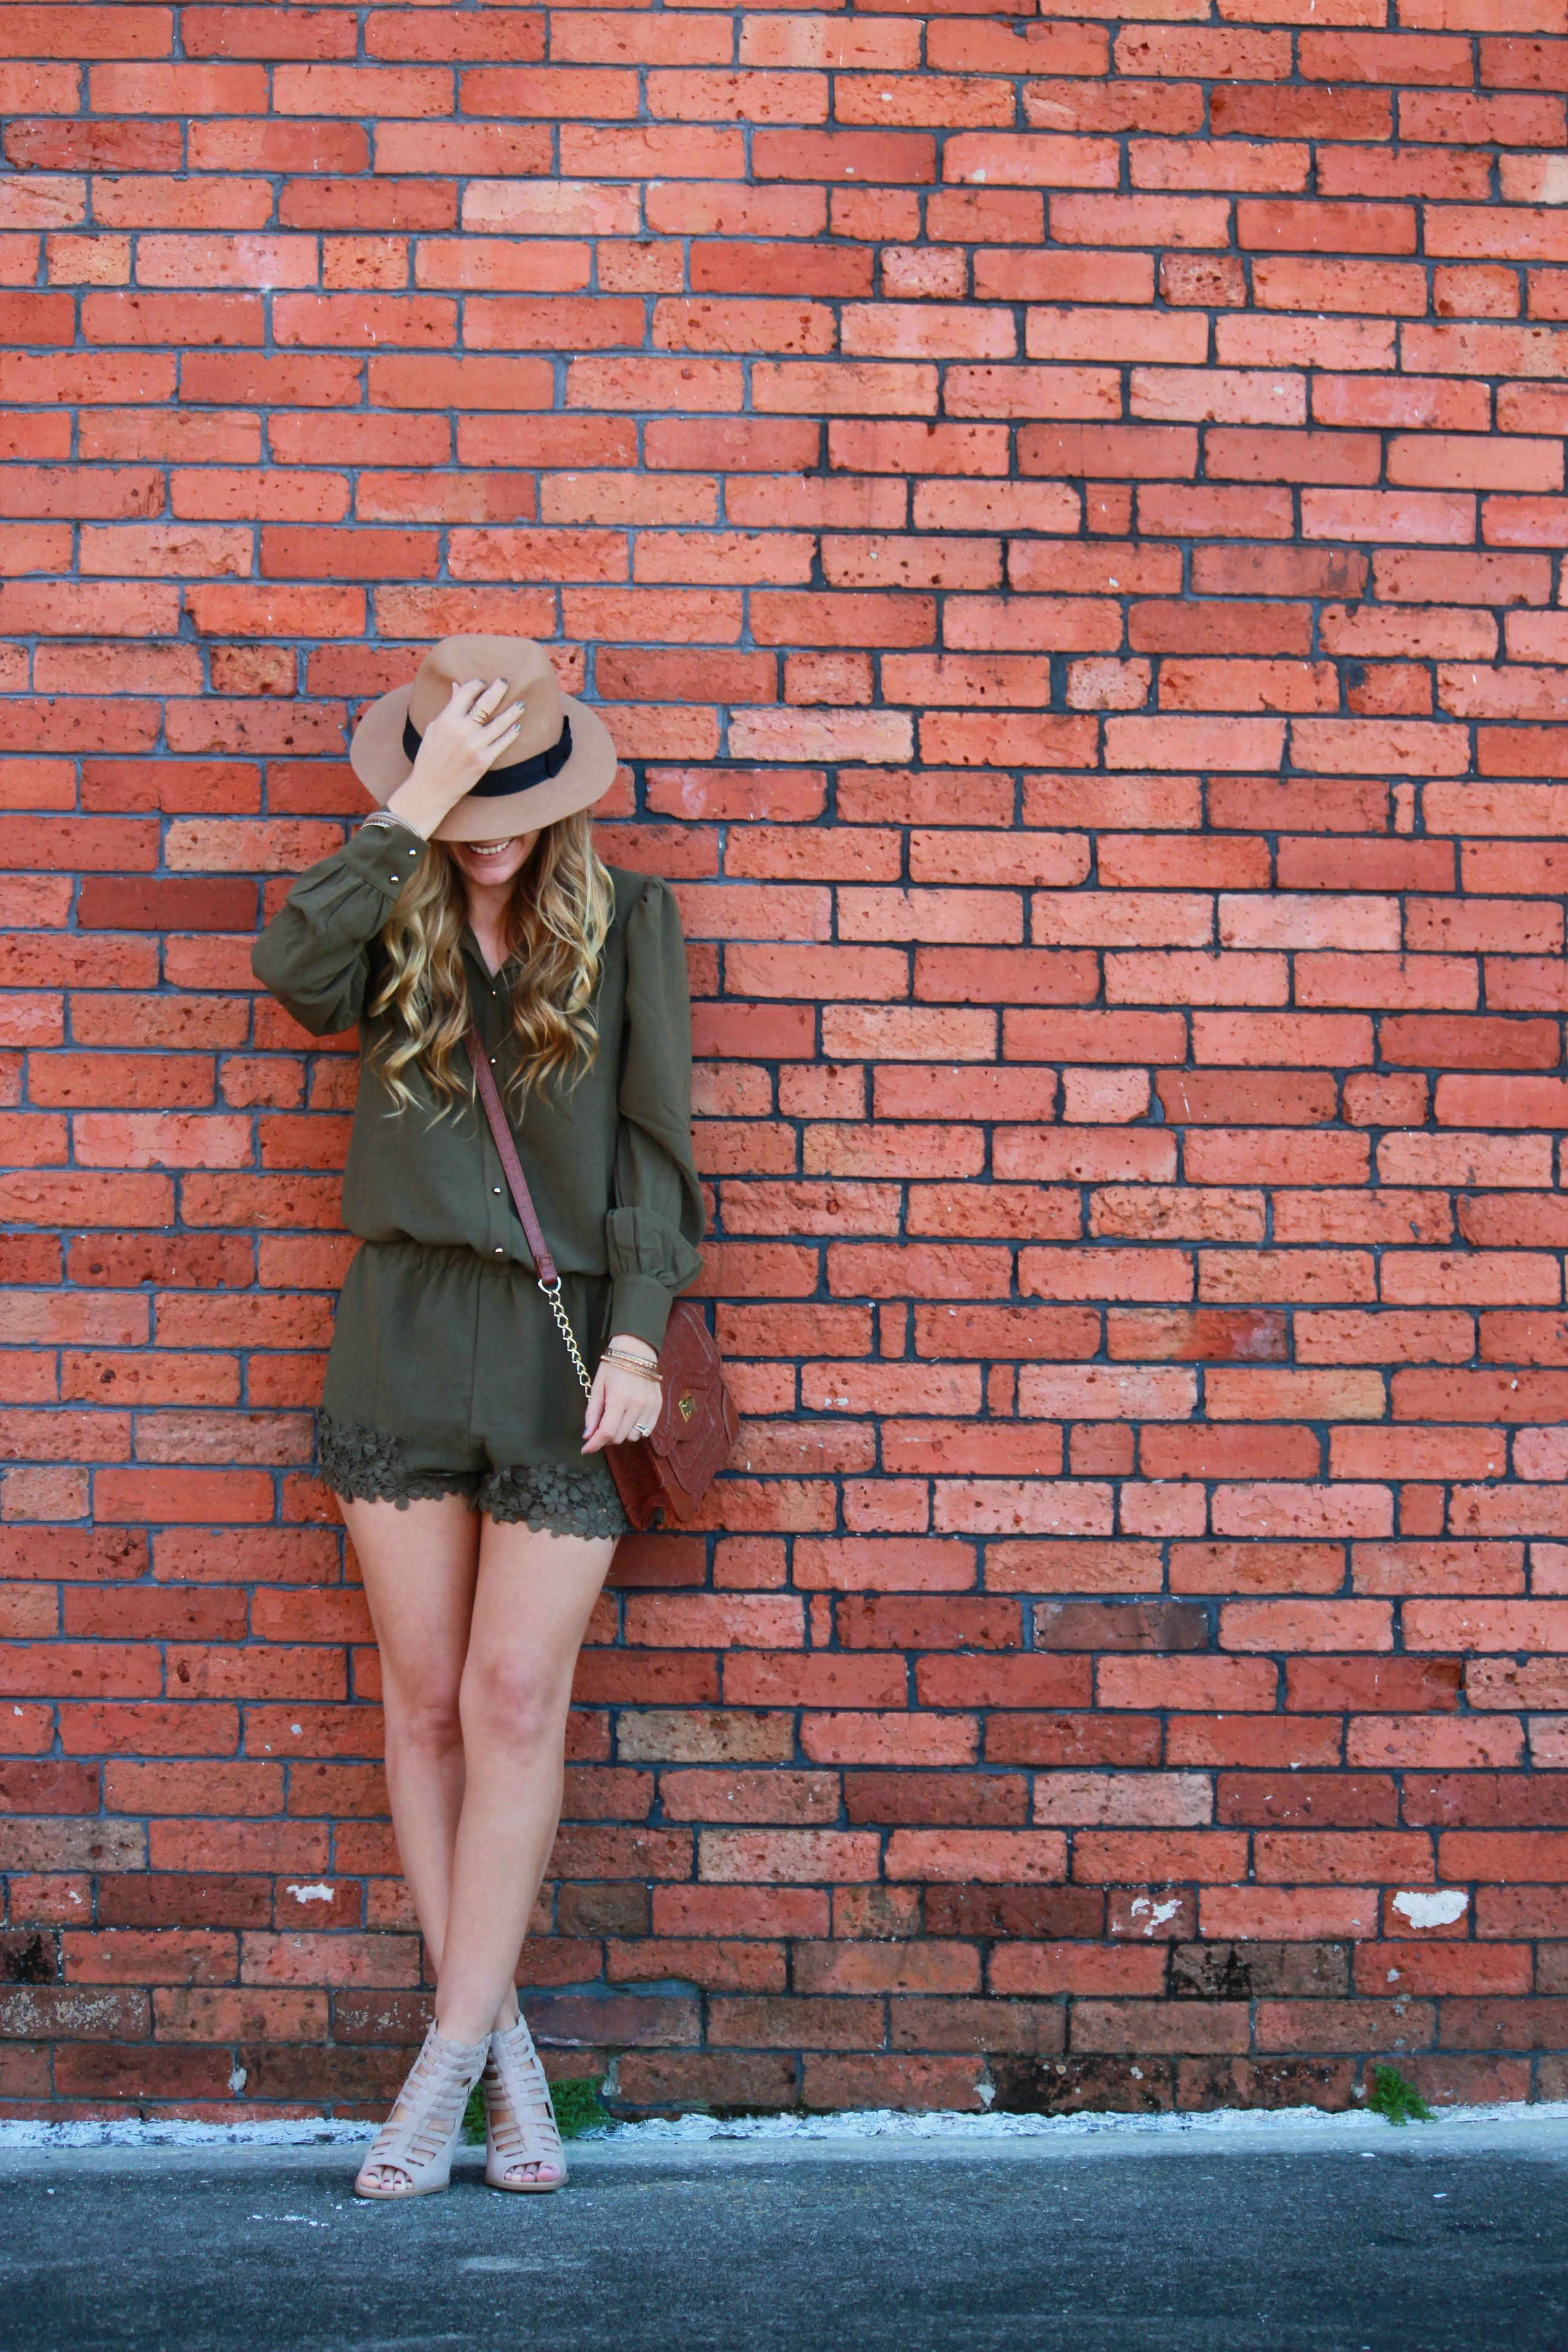 orlando/ florida fashion blogger styles olive romper from pink blush with tjmaxx booties and crossbody bag for a casual fall outfit